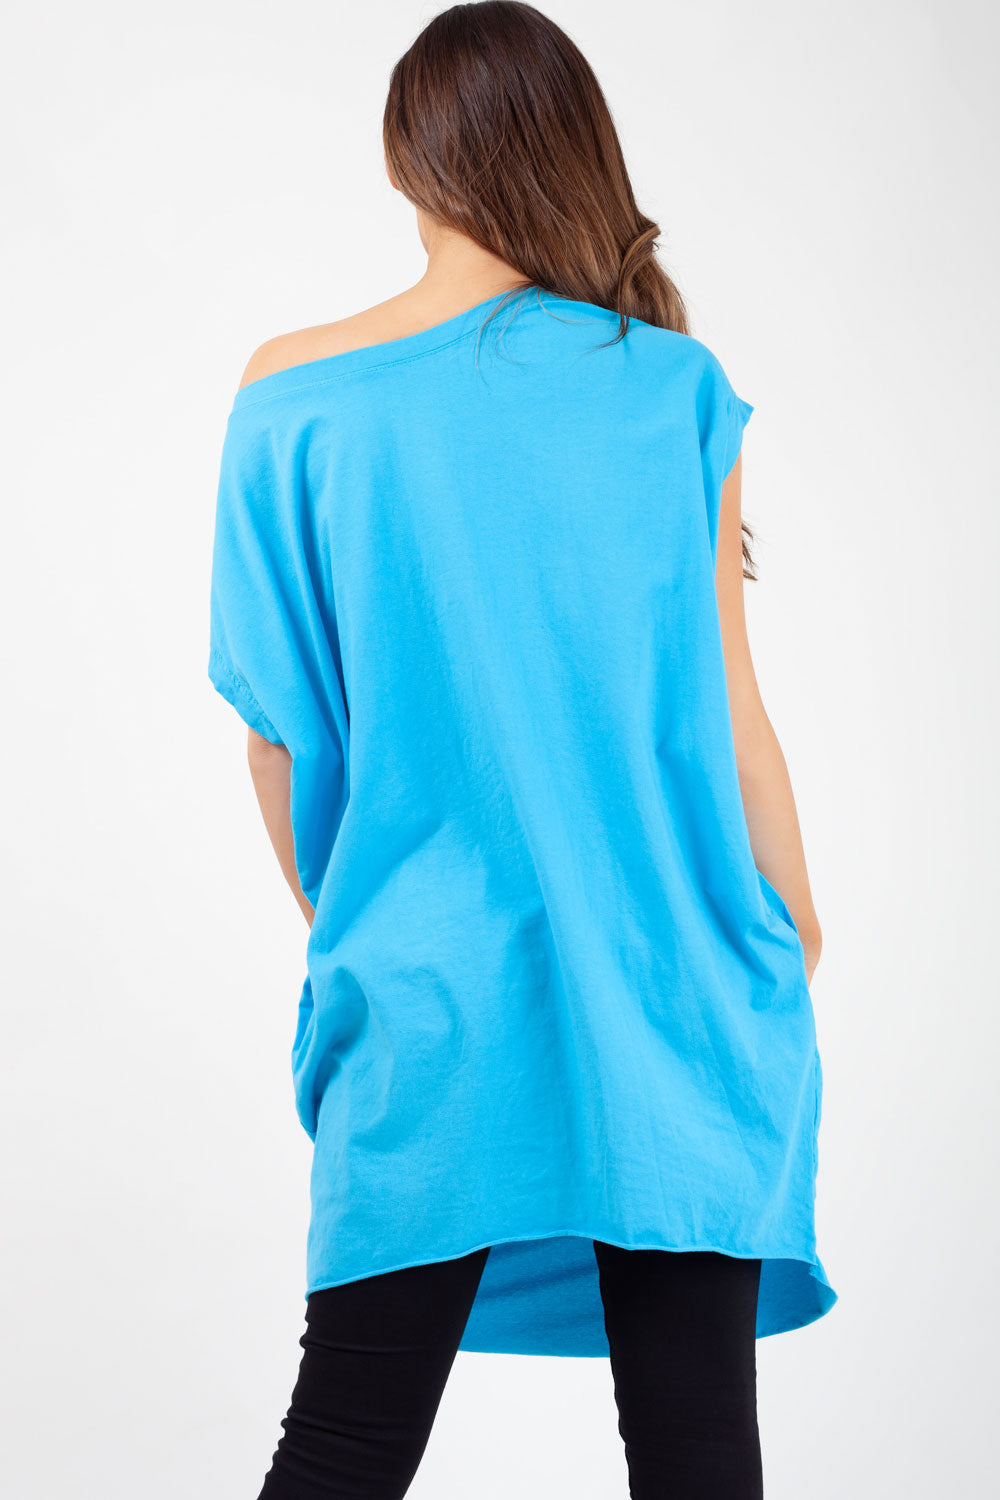 sky blue oversized t shirt styledup fashion